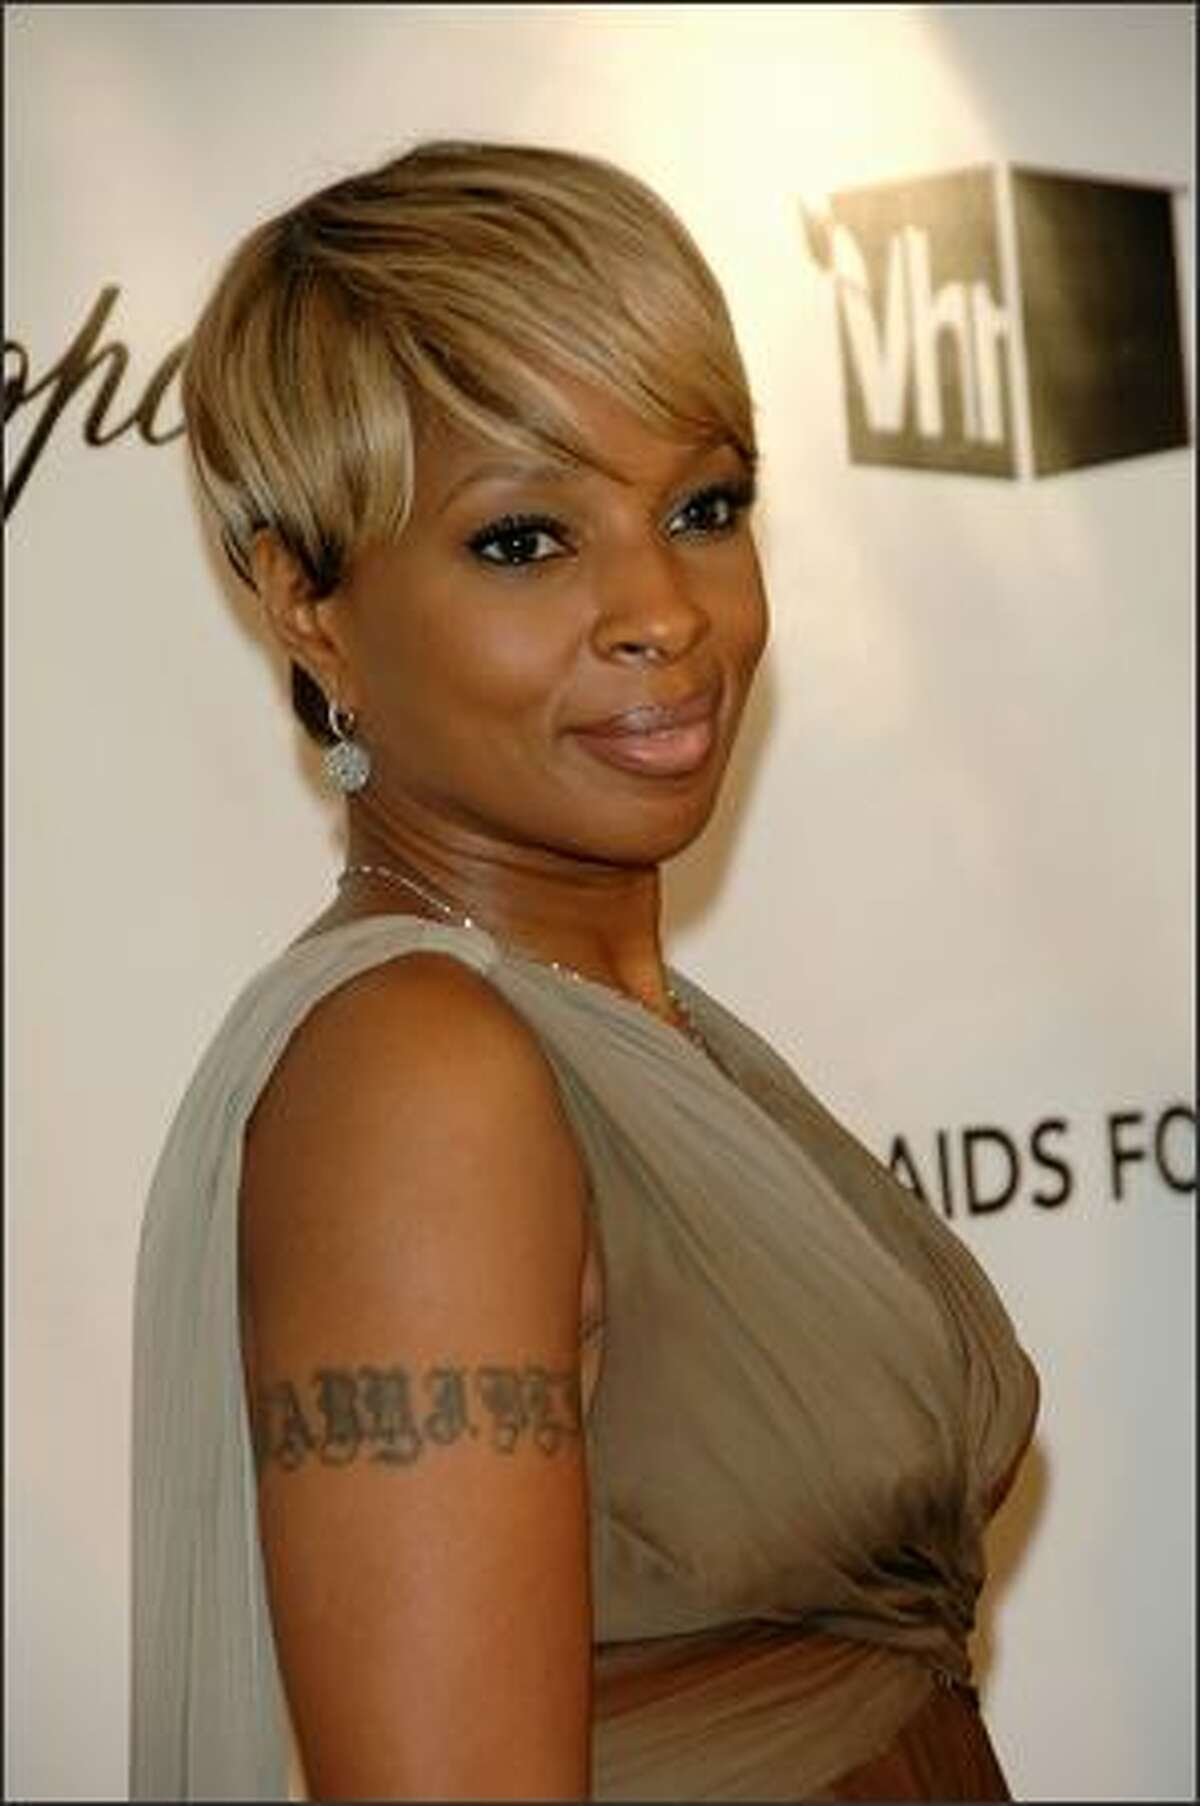 Musician Mary J. Blige attends the 16th Annual Elton John AIDS Foundation Academy Awards viewing party at the Pacific Design Center in West Hollywood, California.